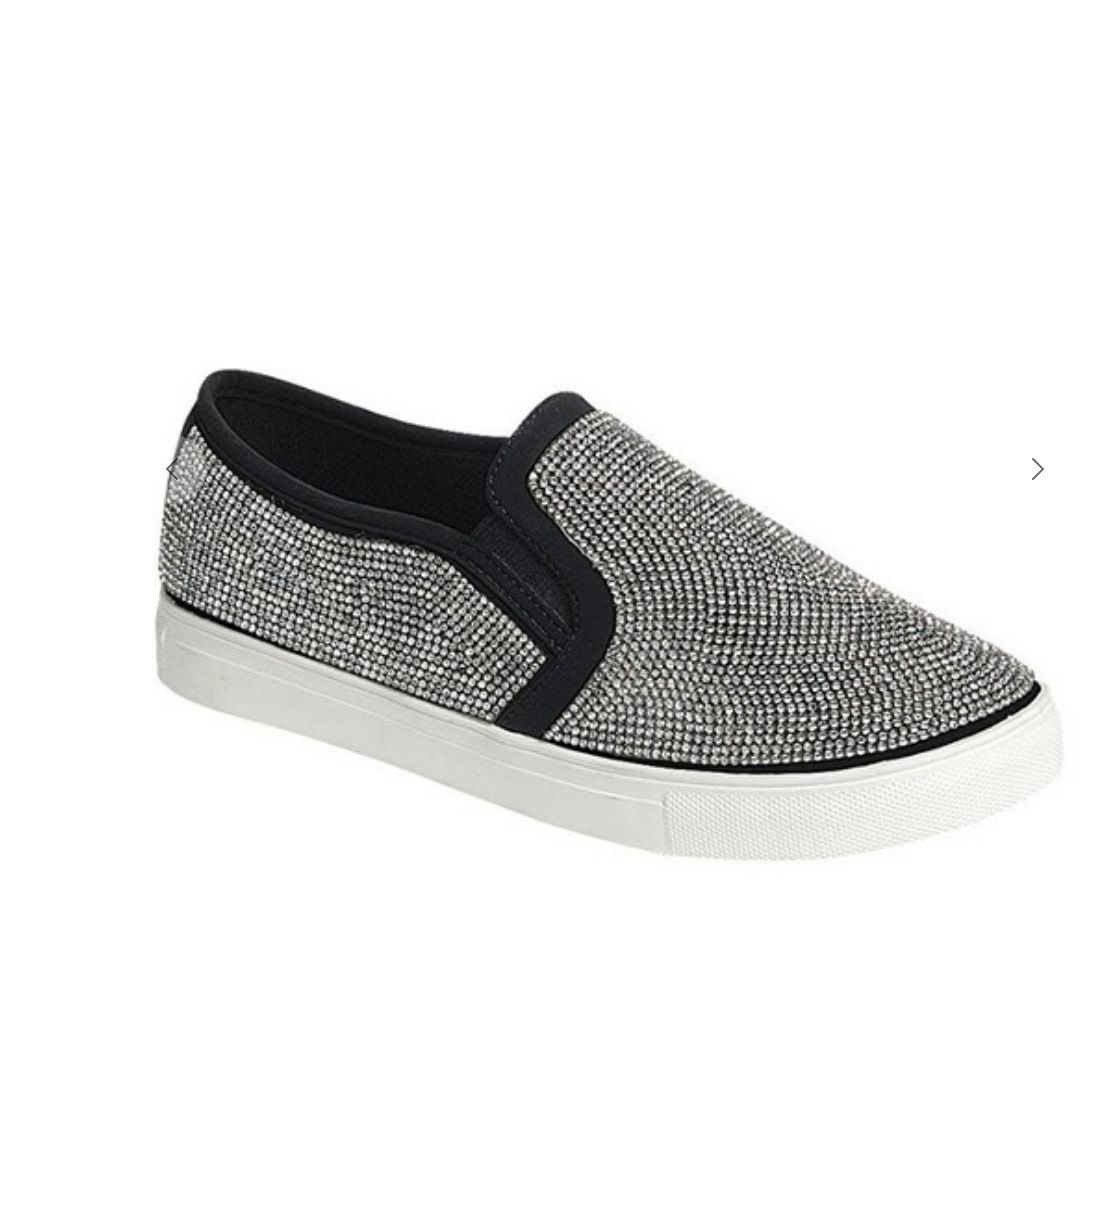 Slip on shoe with white Rubber Sole, Silver Trim and Silver Bling